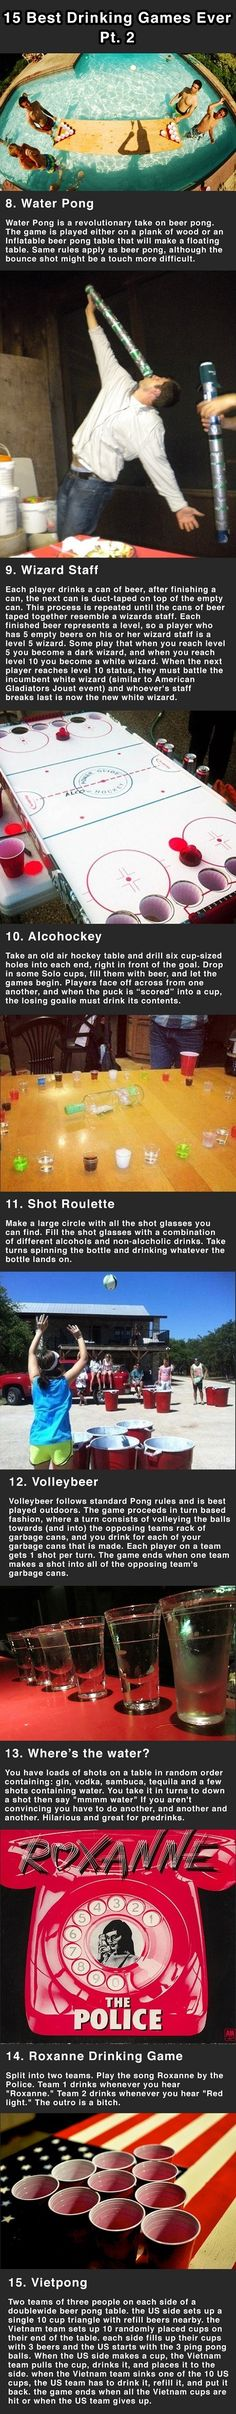 The best drinking games ever part II